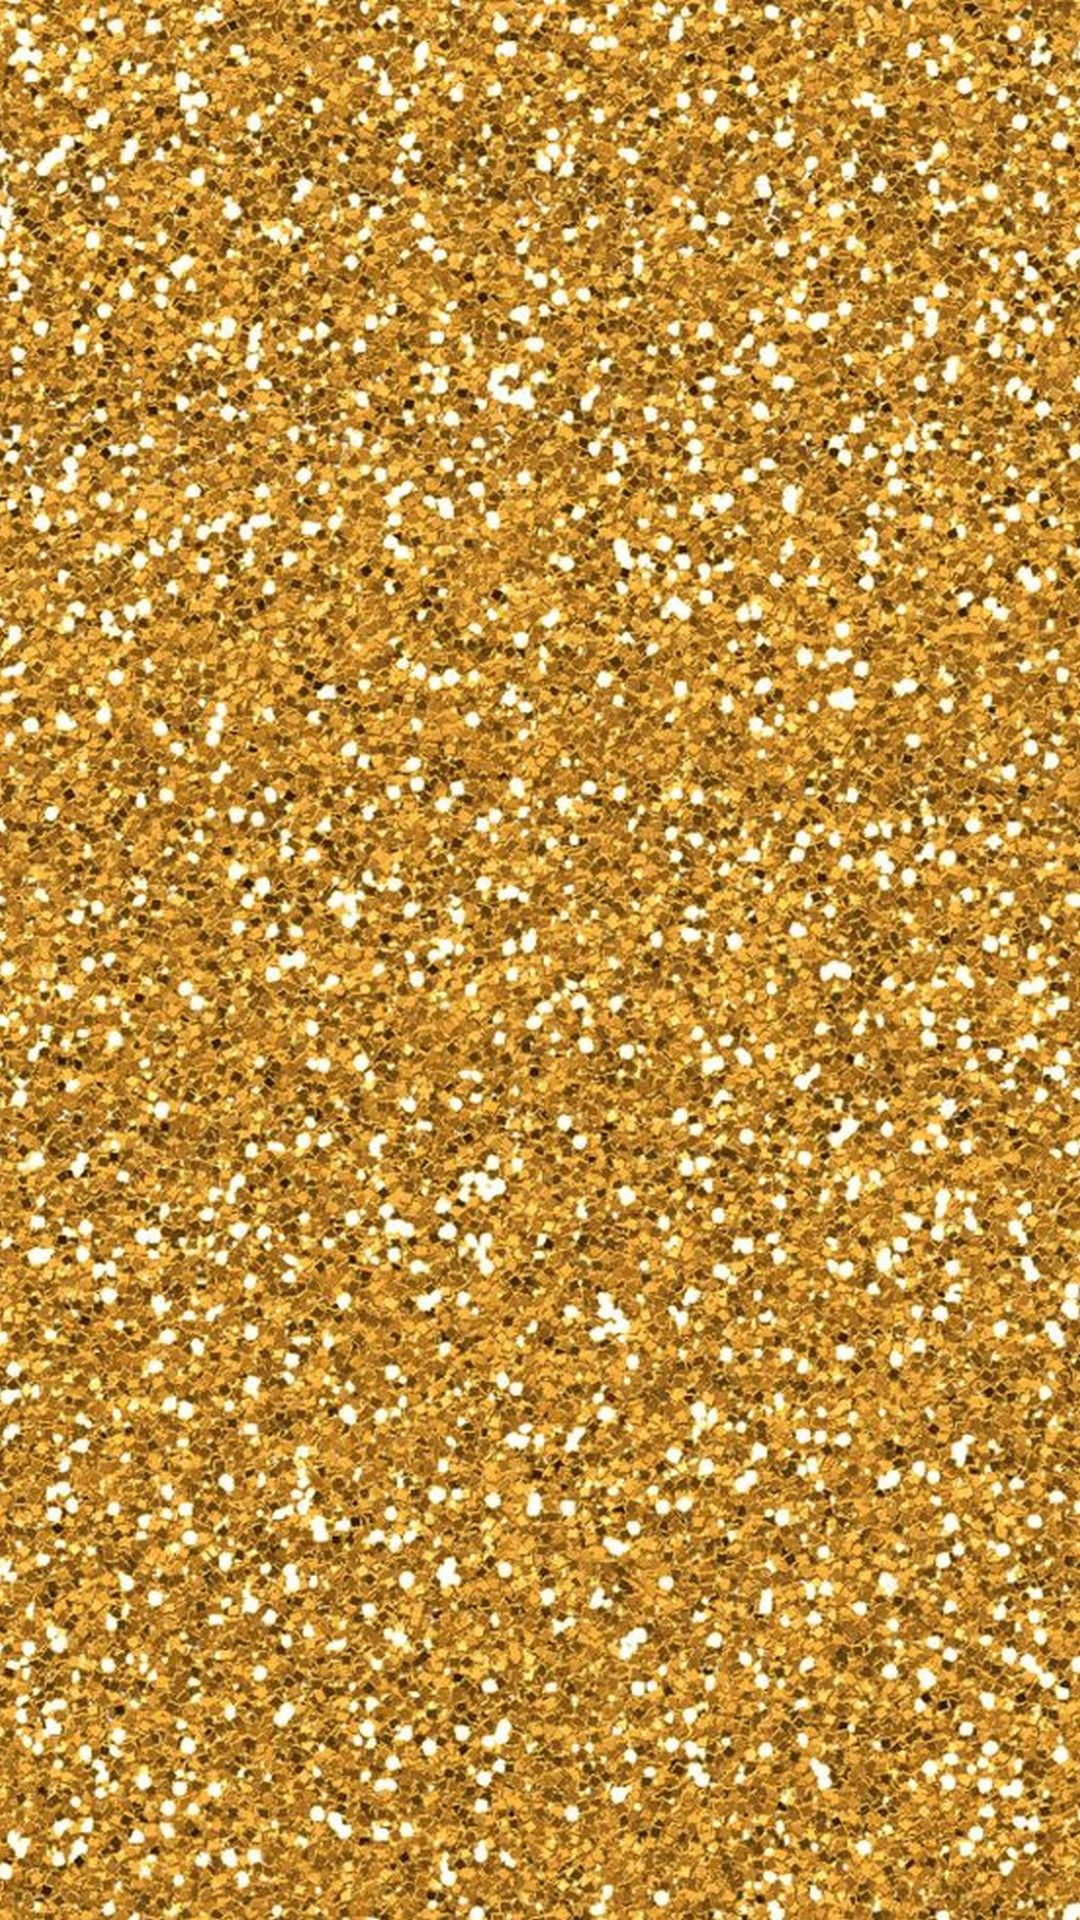 Gold Glitter Backgrounds For Android - 2019 | Android ...